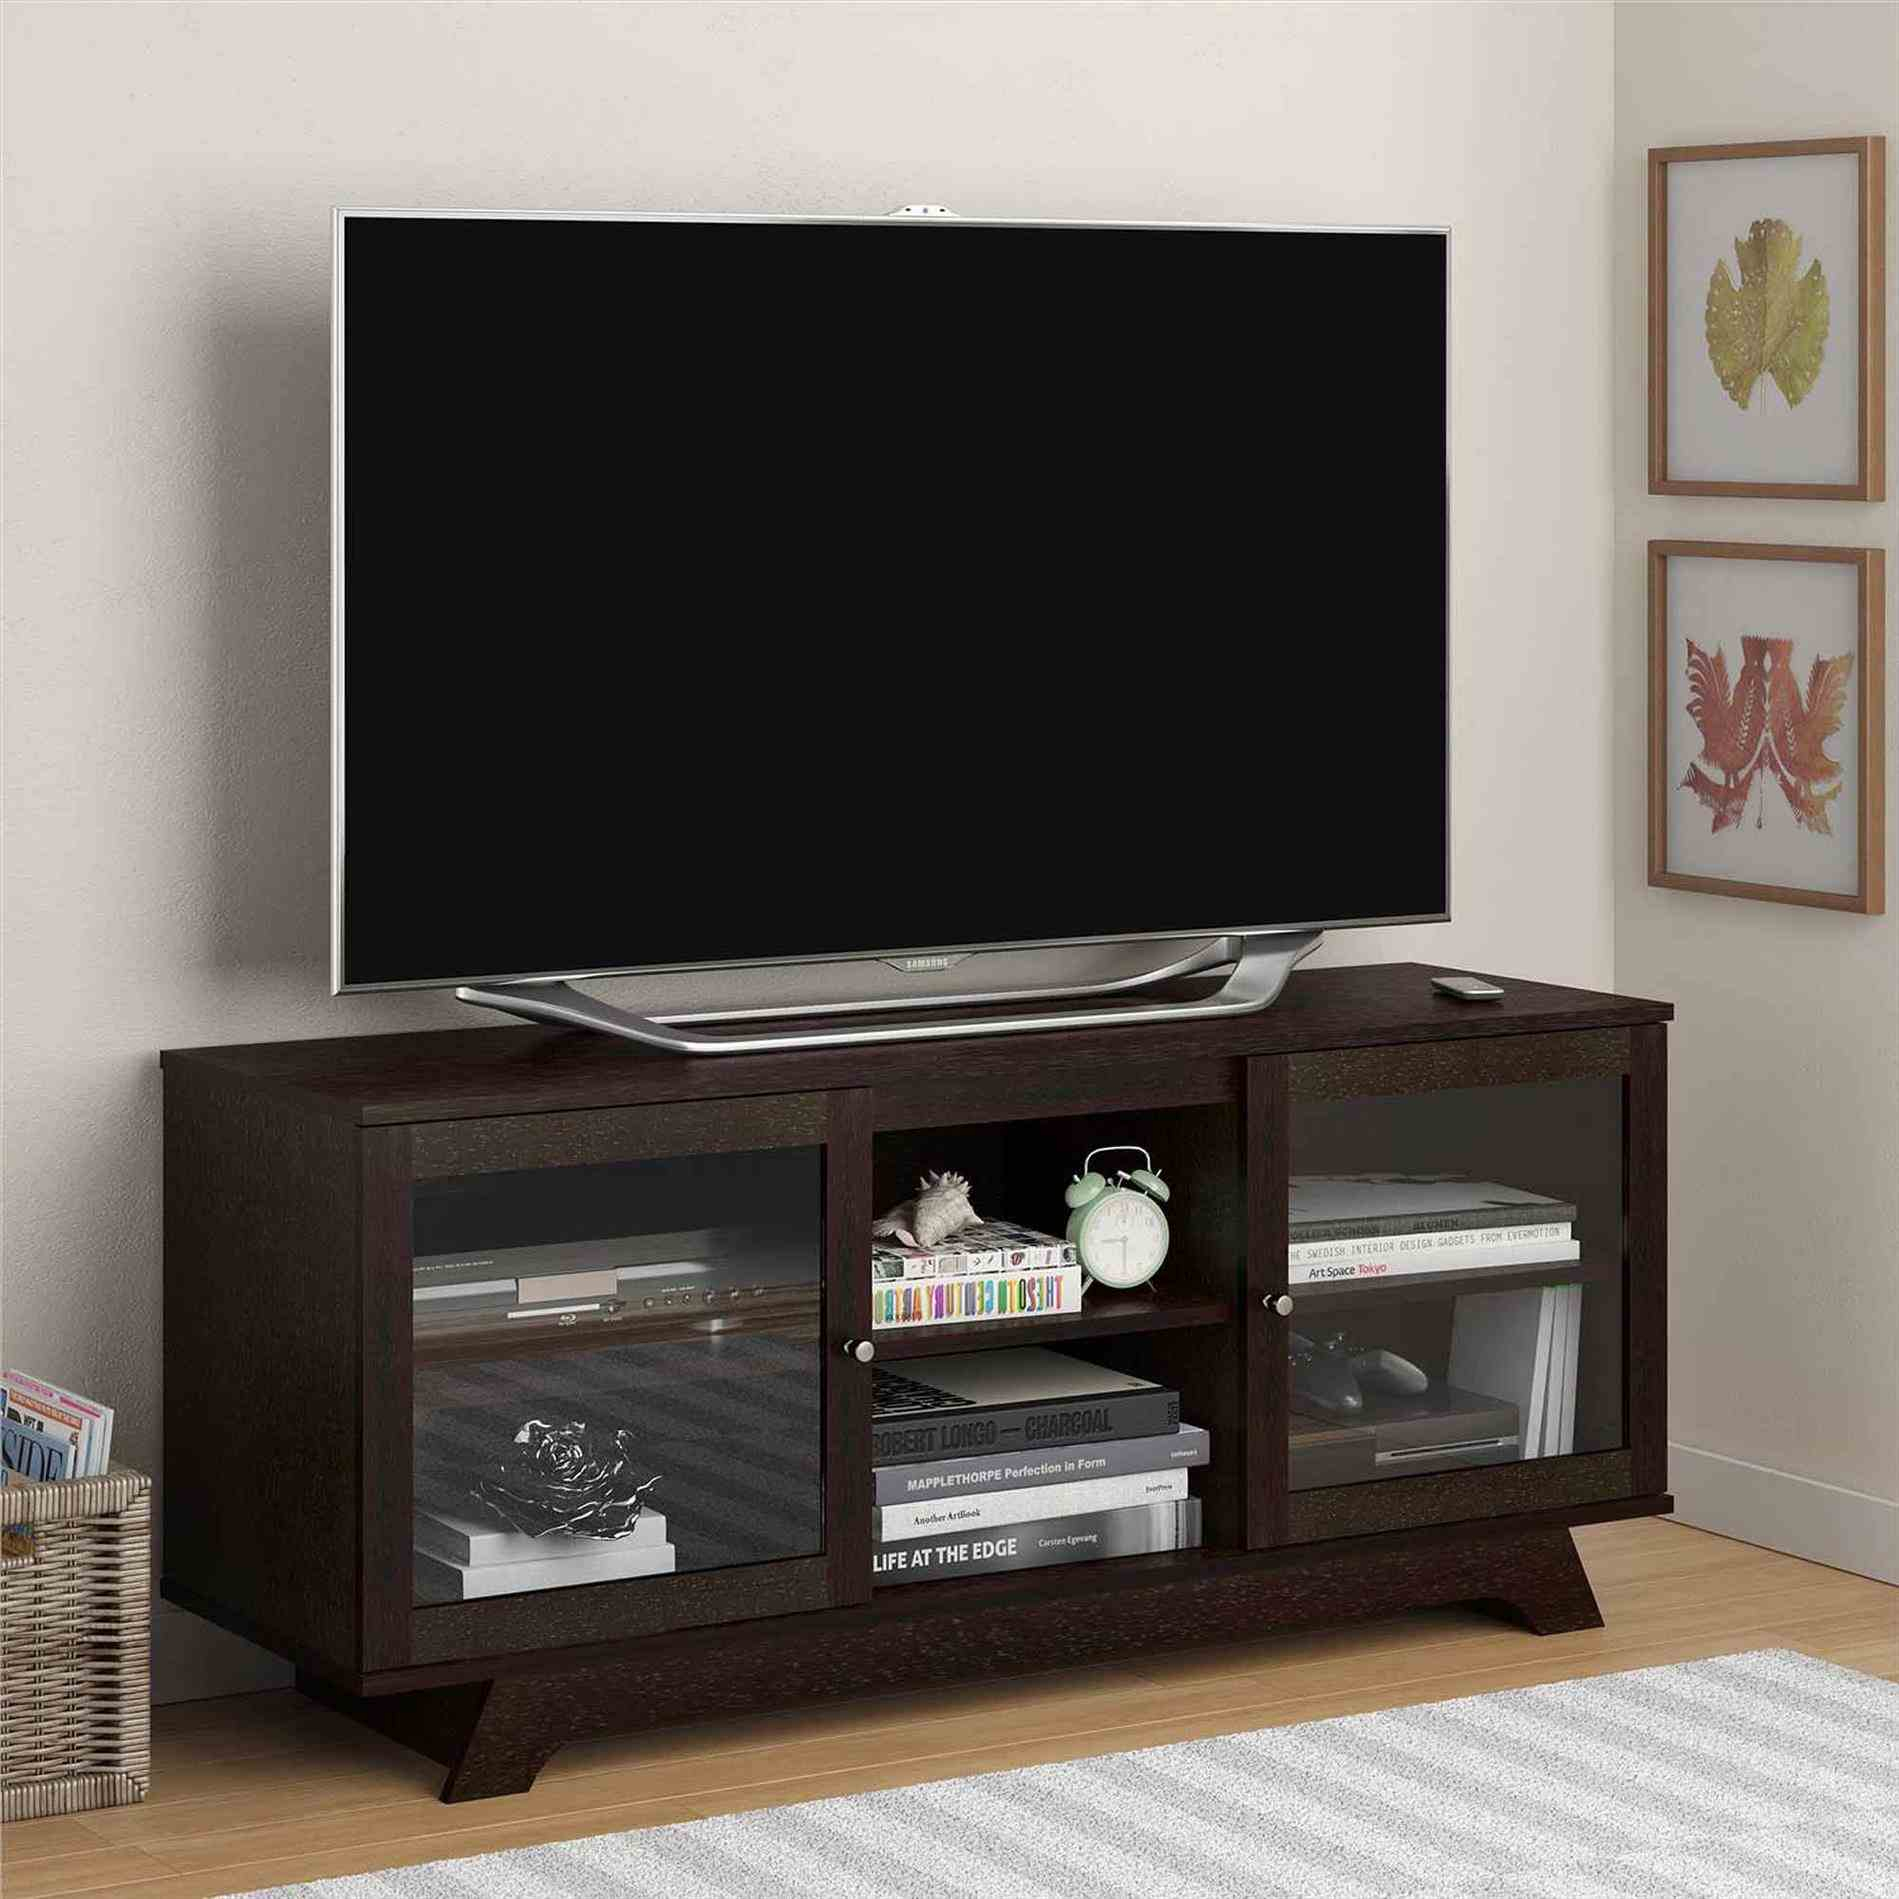 Oak Entertainment Center Wall Units Rc Willey Sale Delivery Draper With Draper 62 Inch Tv Stands (View 5 of 30)